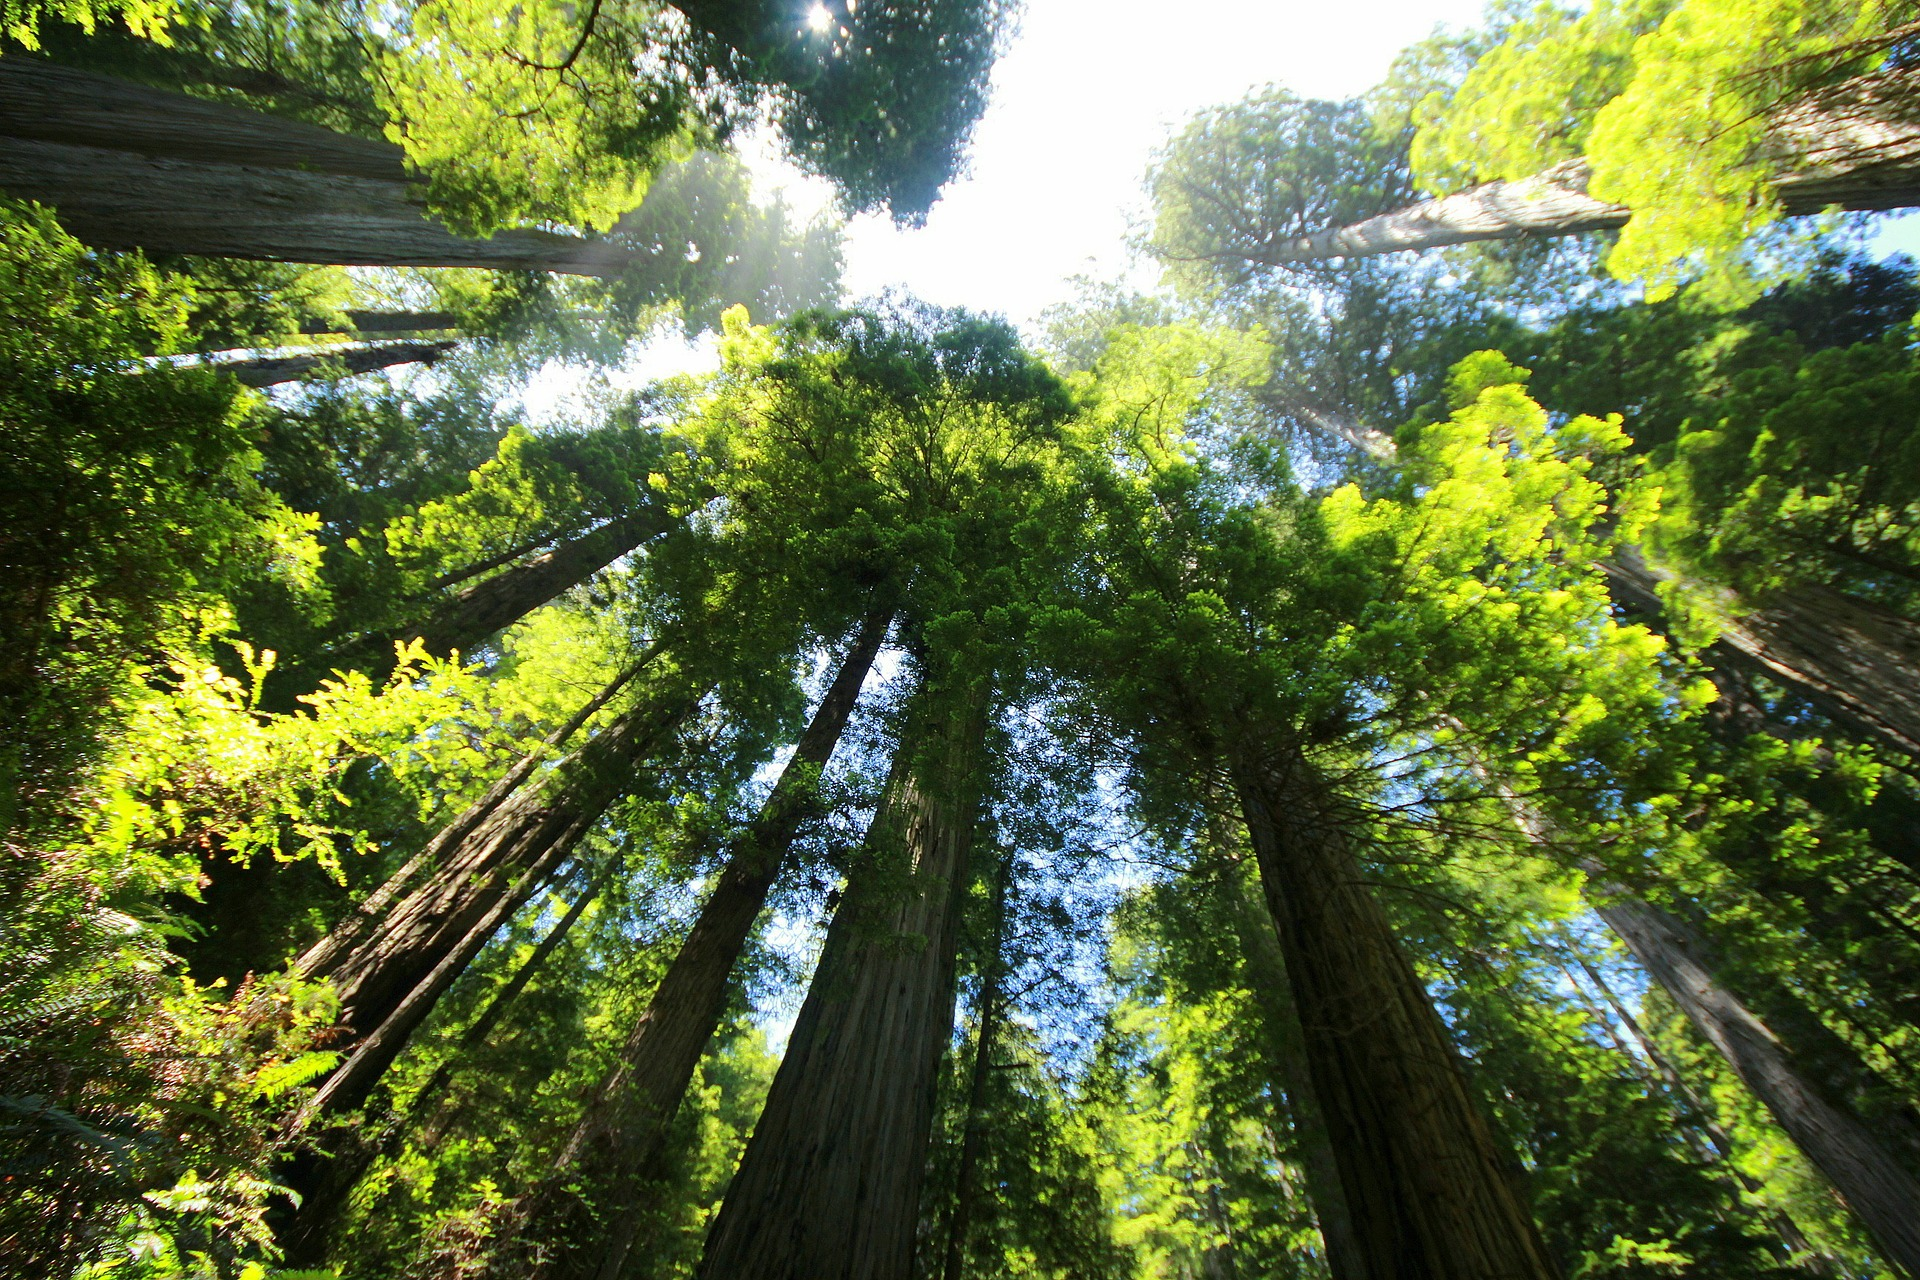 Giant Redwood Sequoia Trees, Muir Woods, Marin County, California